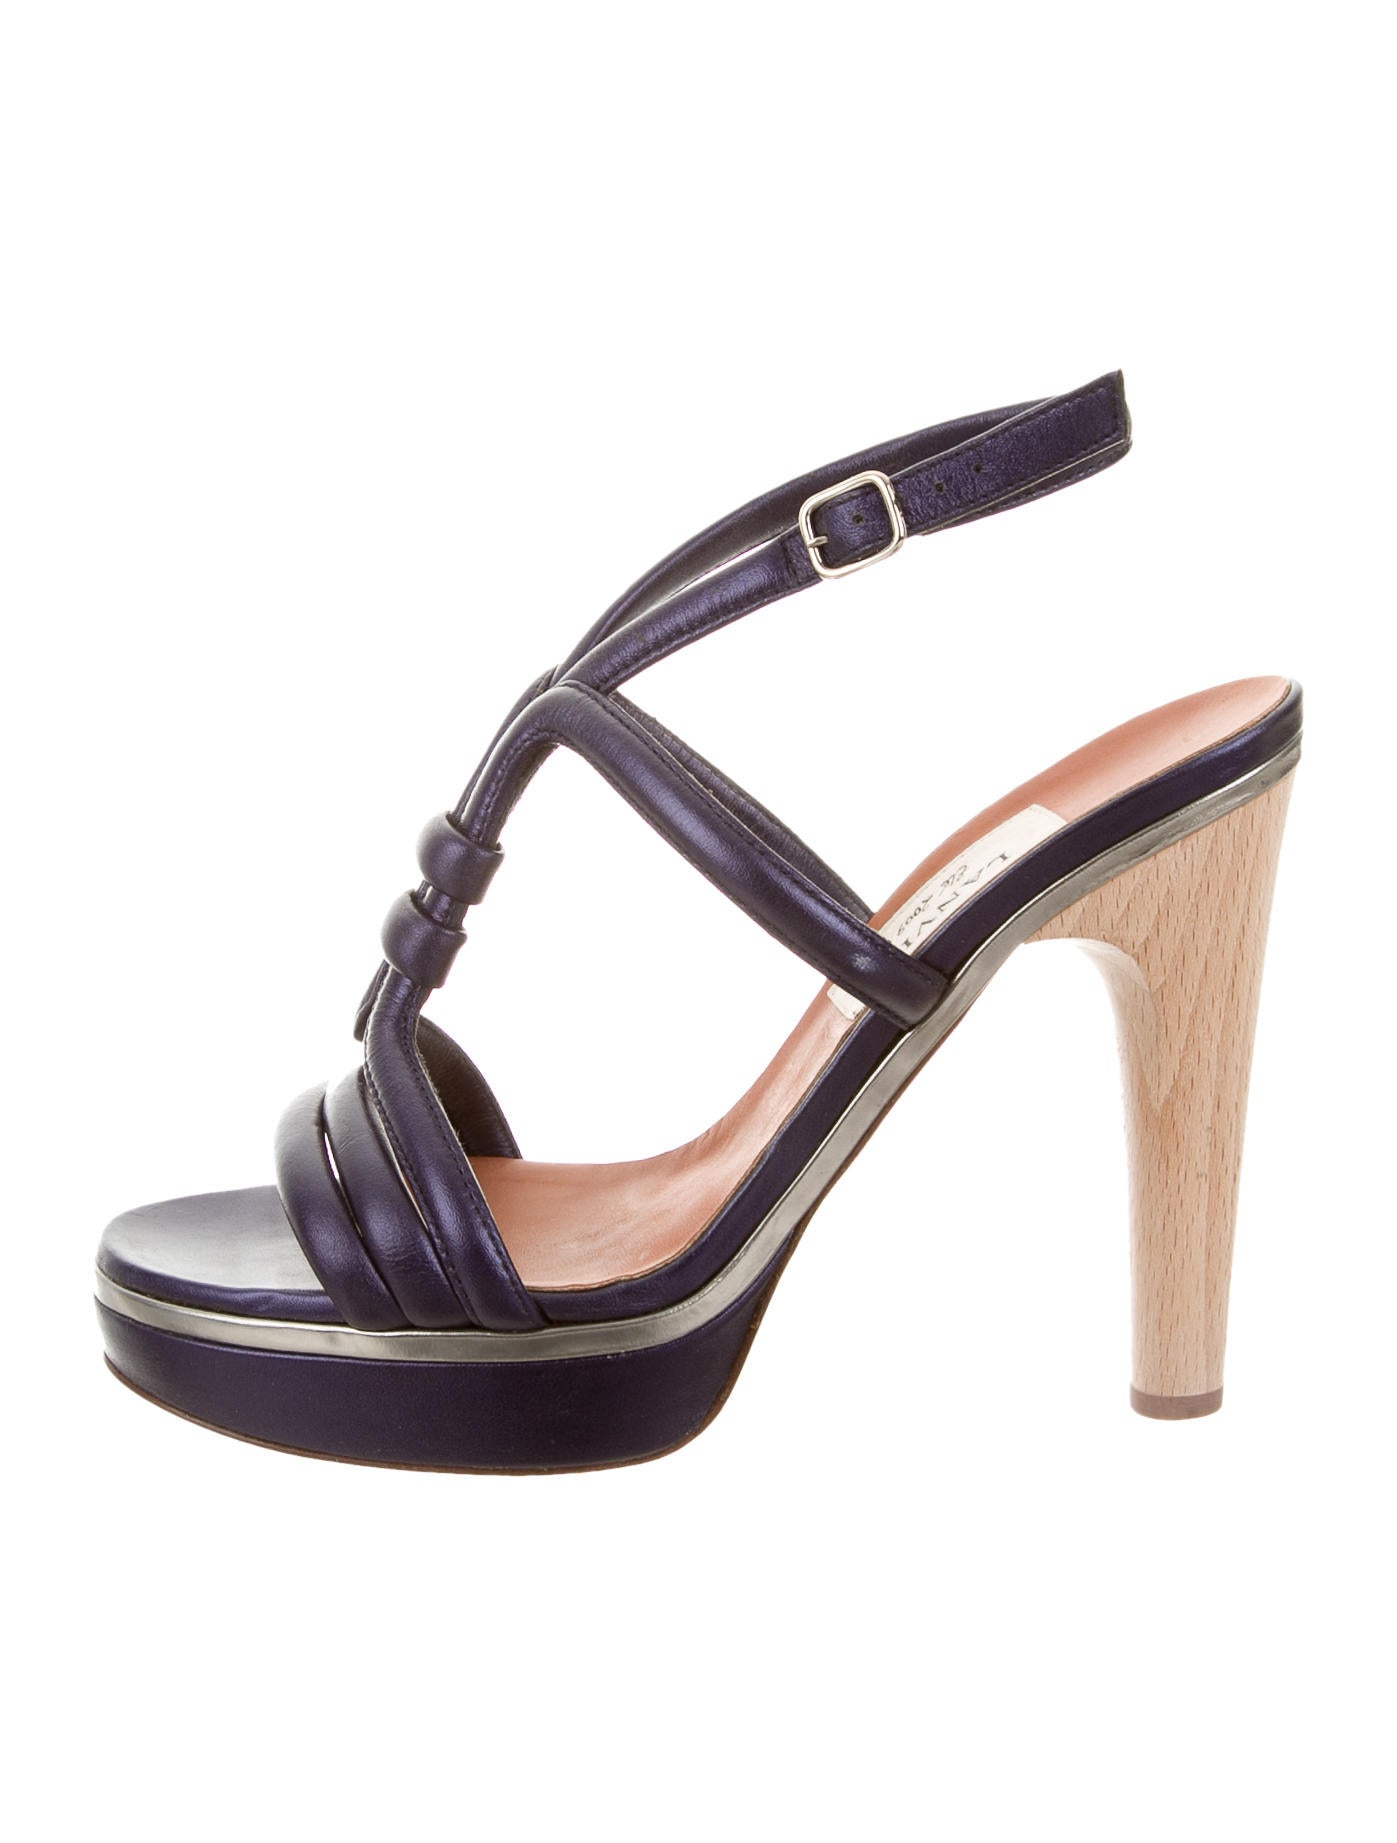 lanvin metallic platform sandals shoes lan54938 the